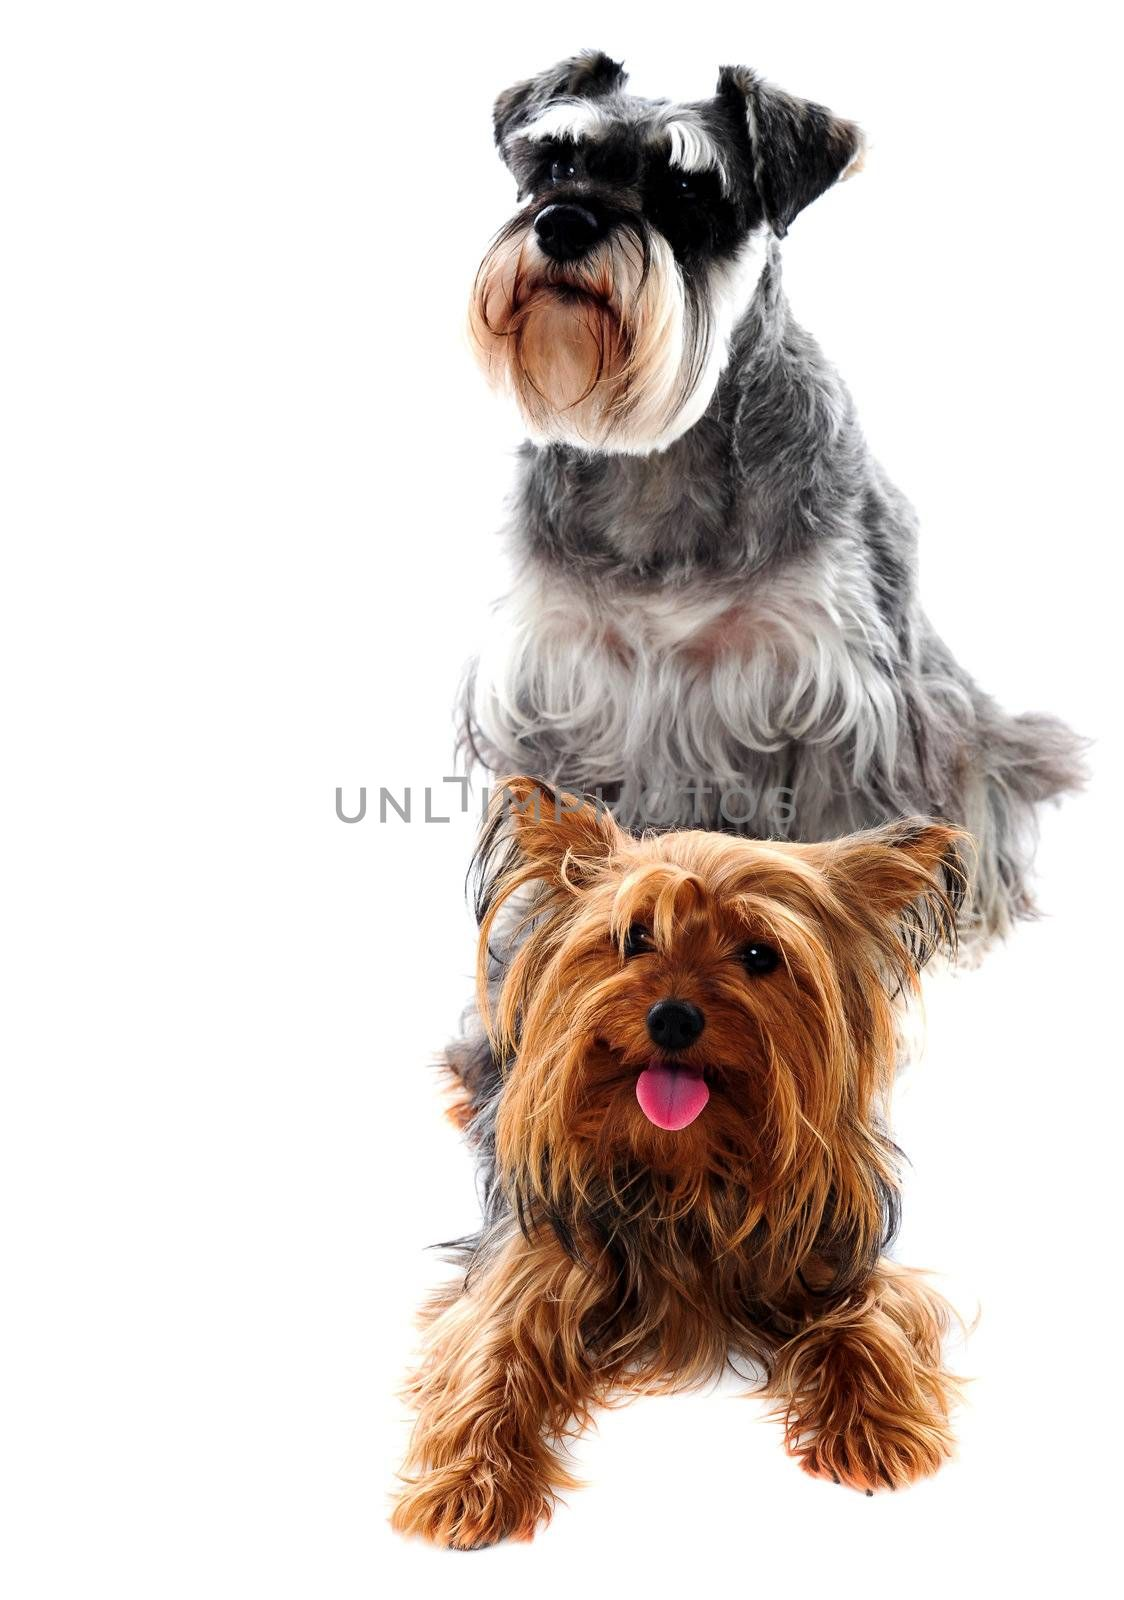 Schnauzer and Yorkshire Terrier. Pets by stockyimages